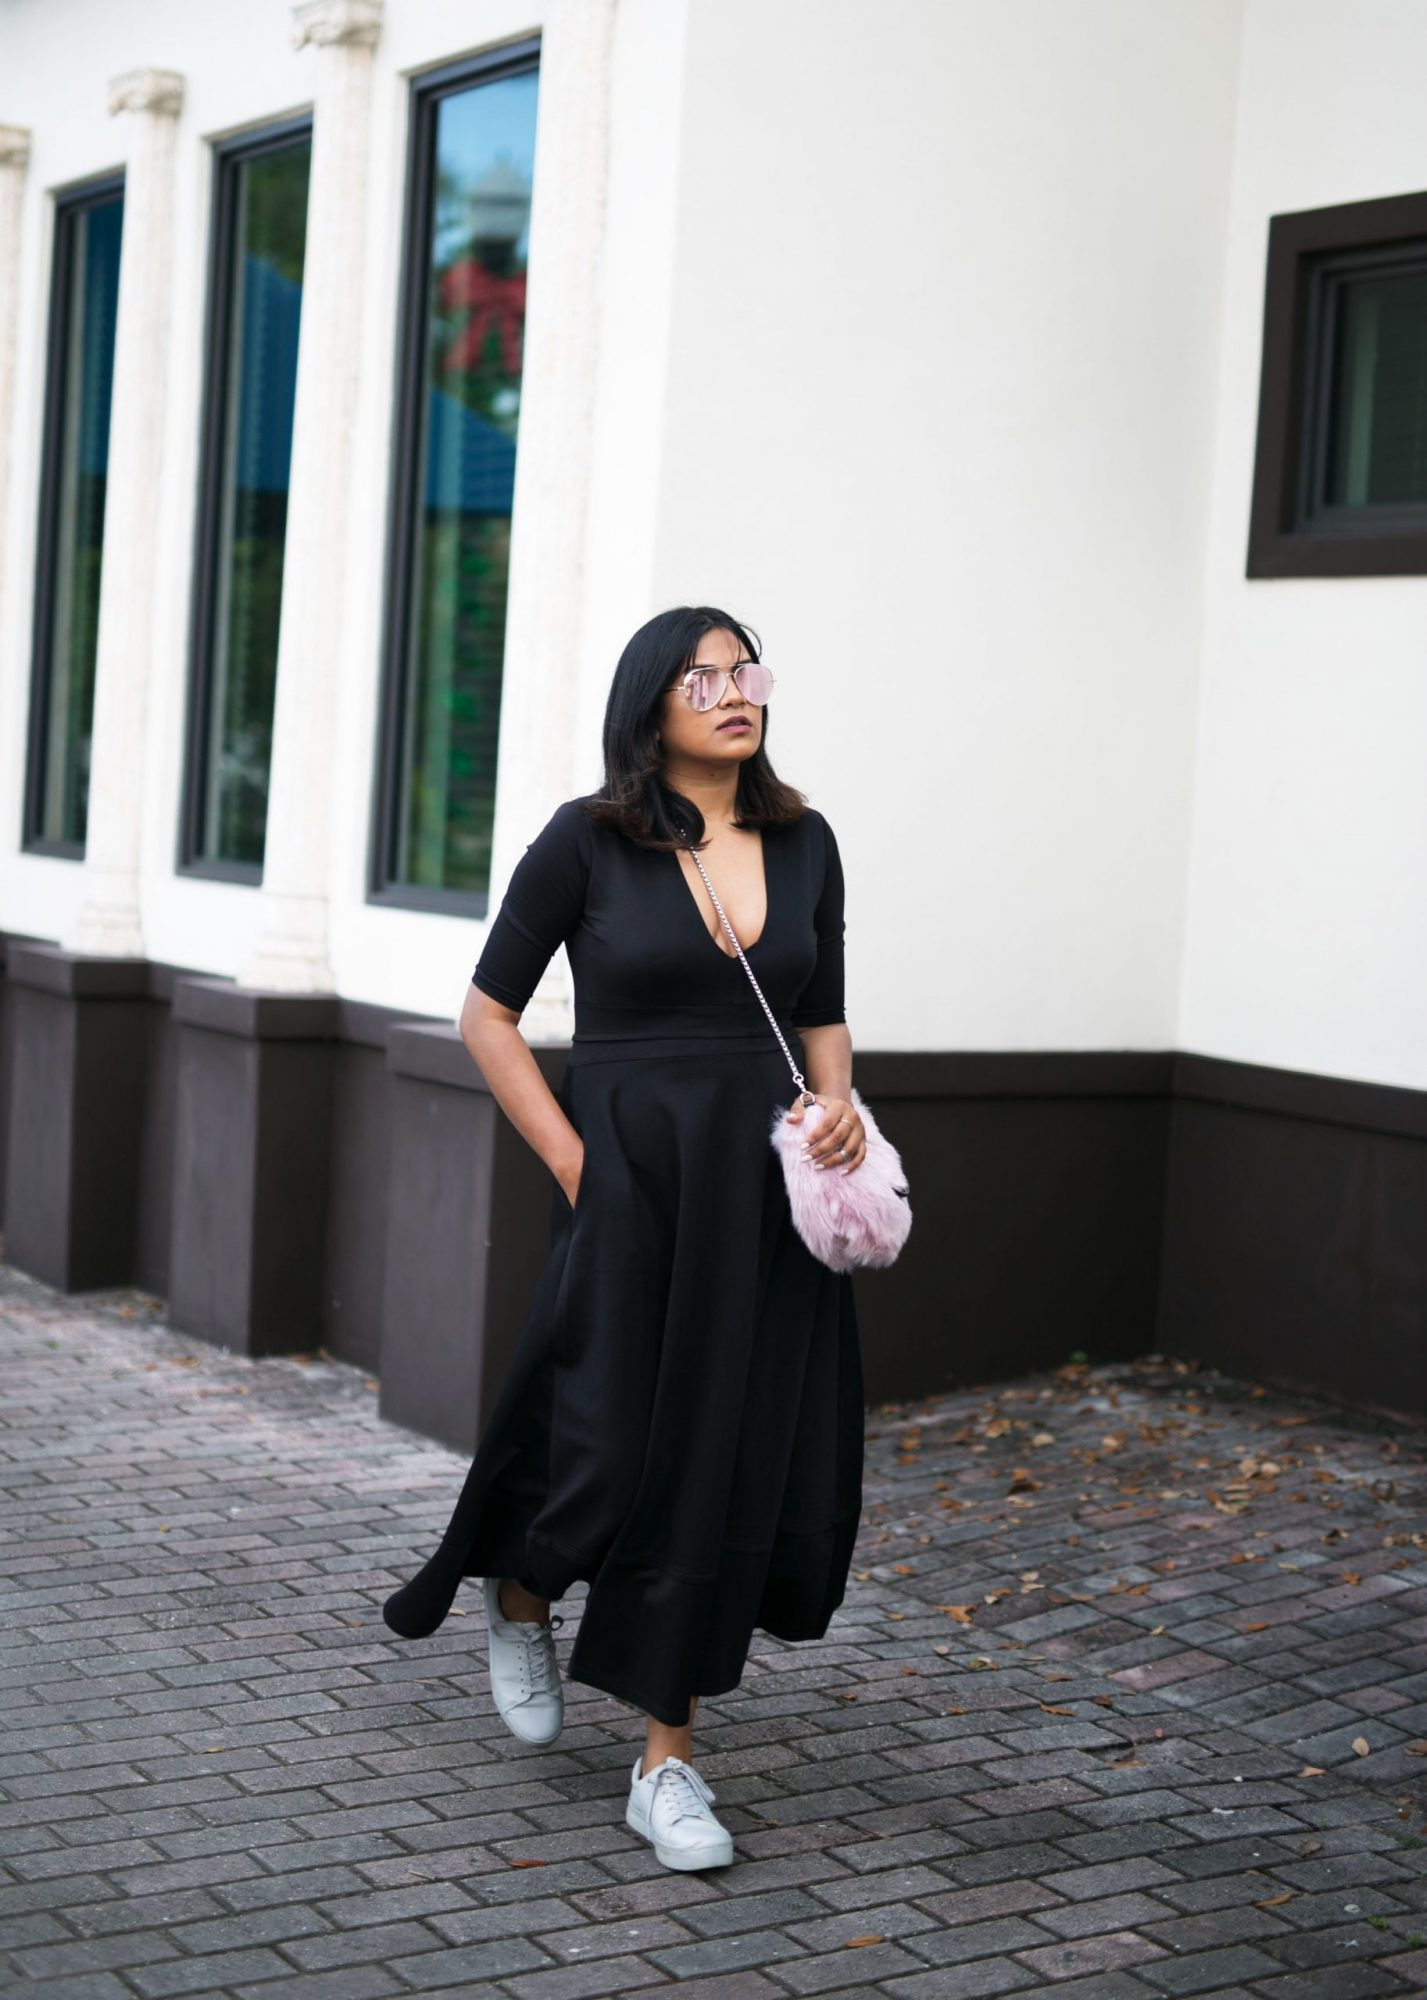 Miami Fashion Street Style Long Black Dress